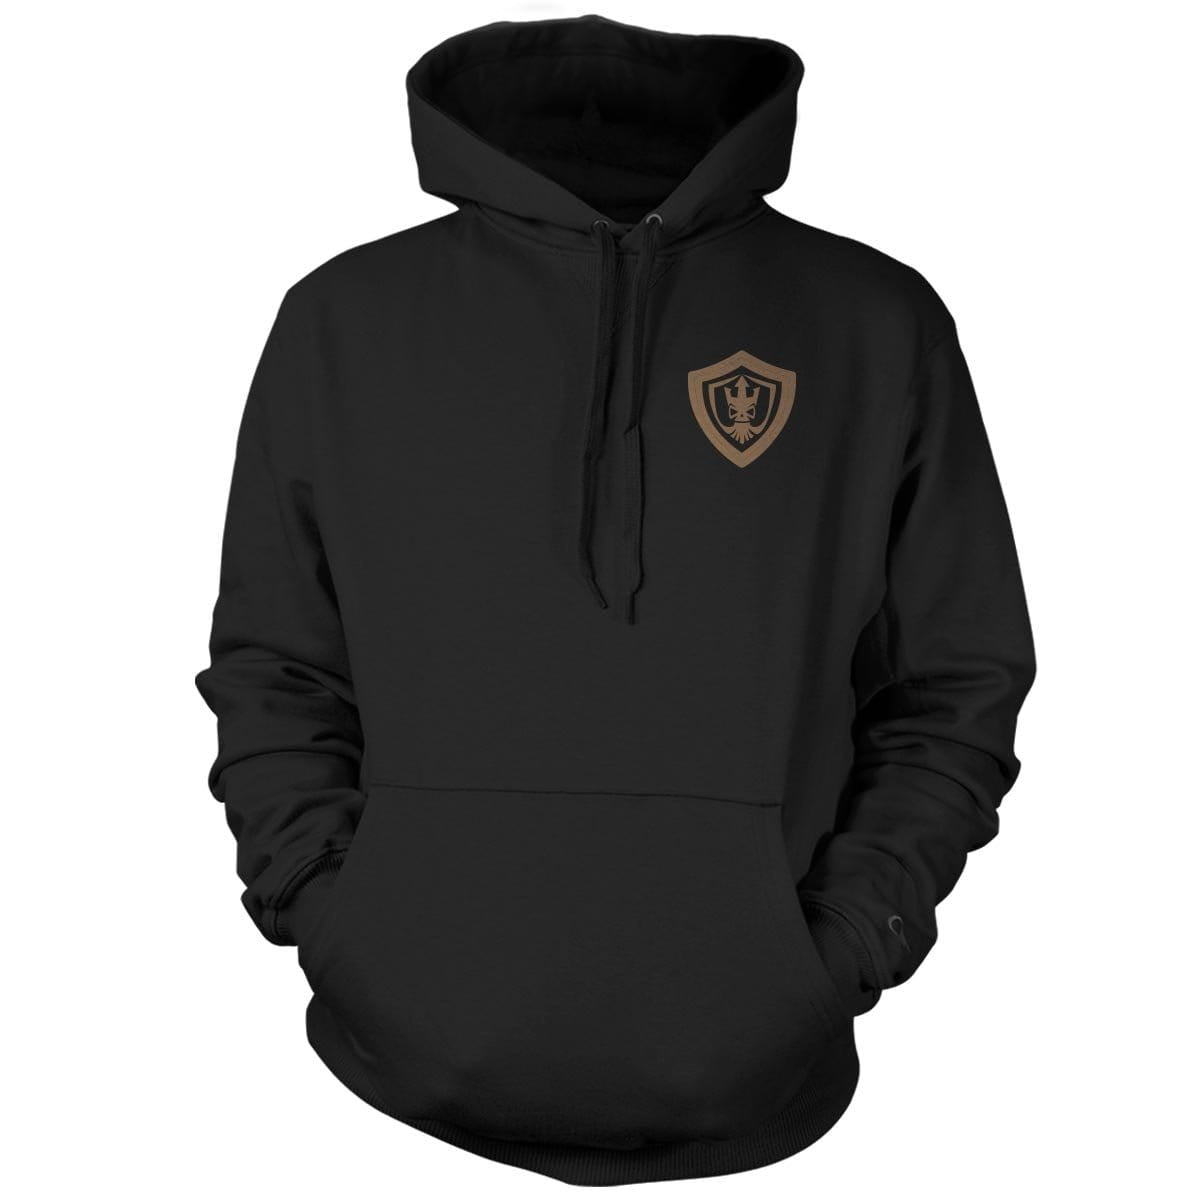 PHUMC Pathfinders Chapter Hoodie - Pipe Hitters Union